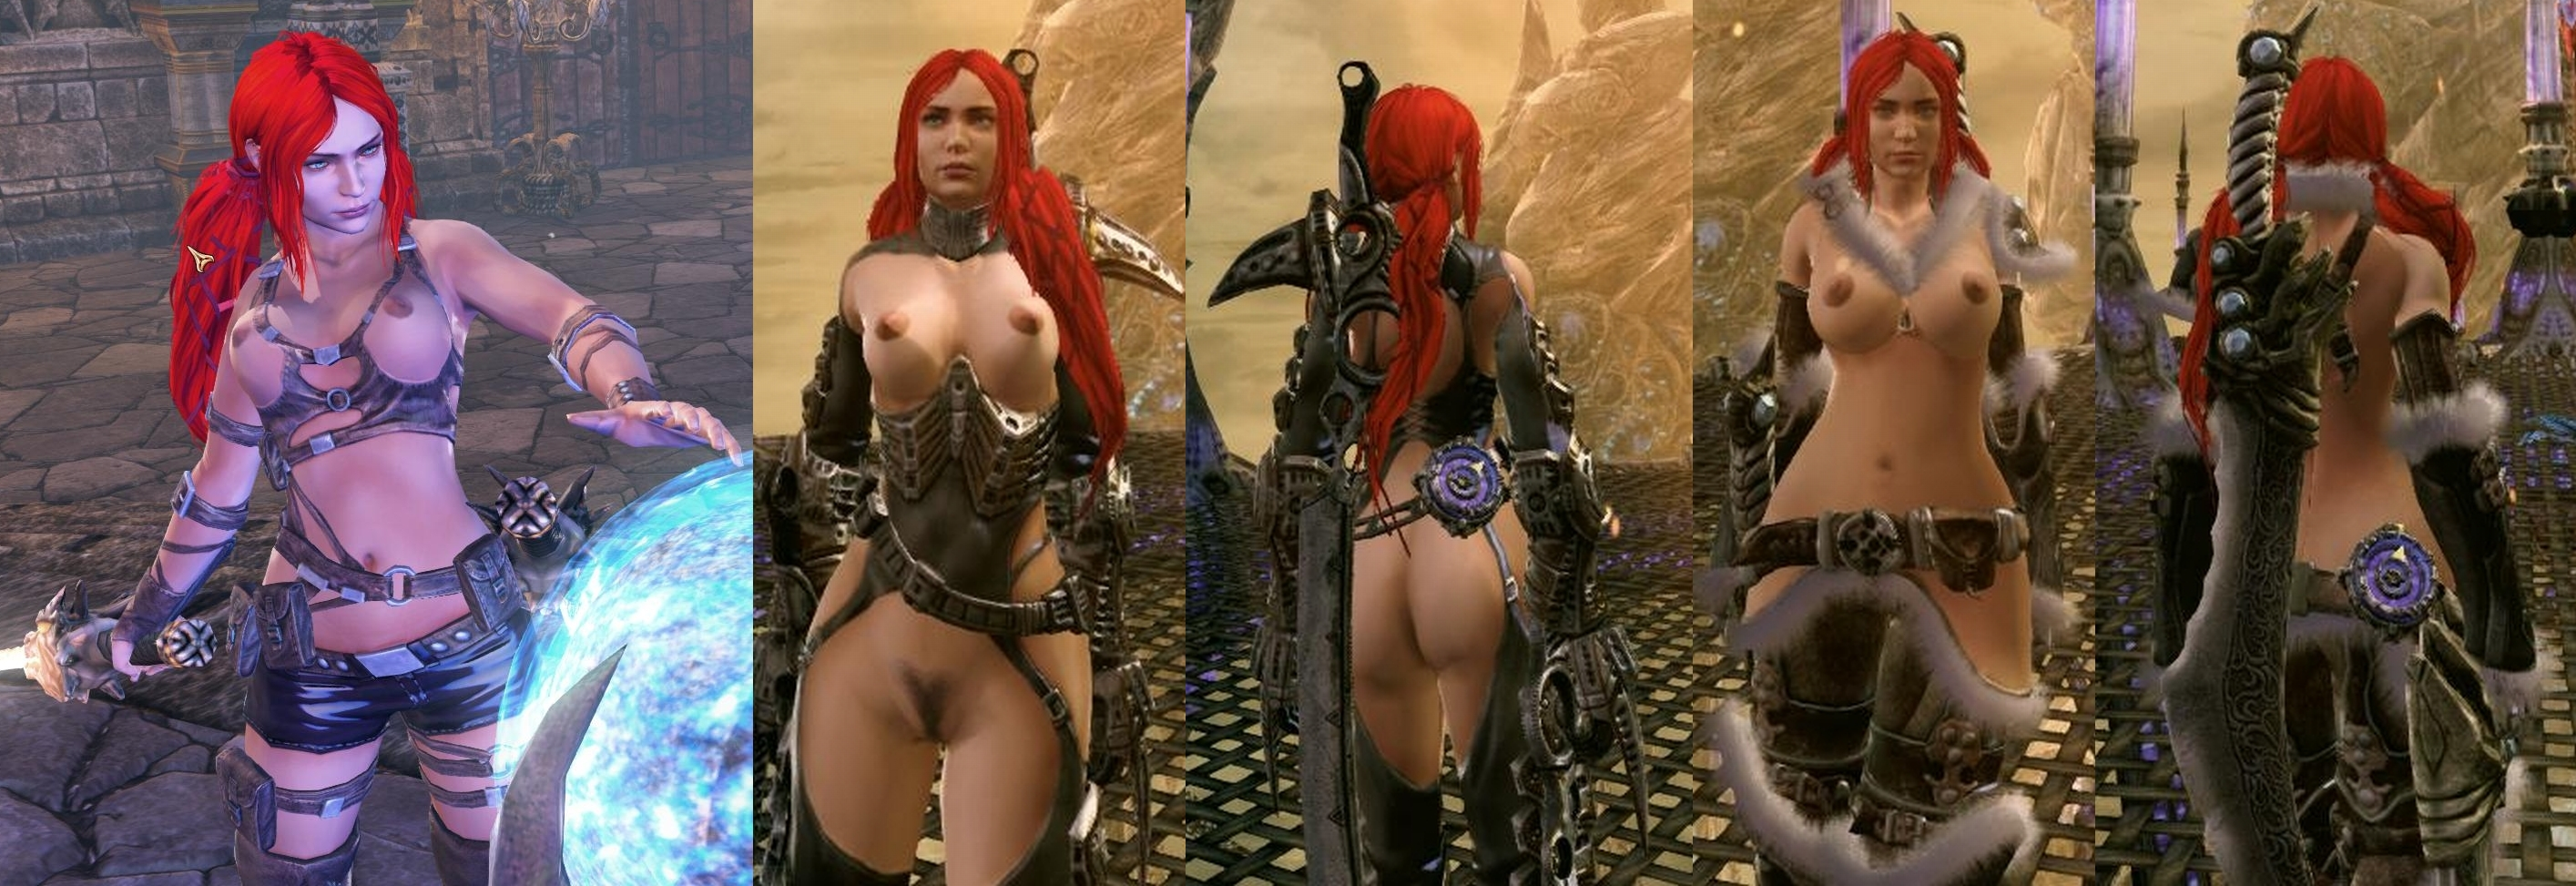 Download blades of time nude mod pack hentai video